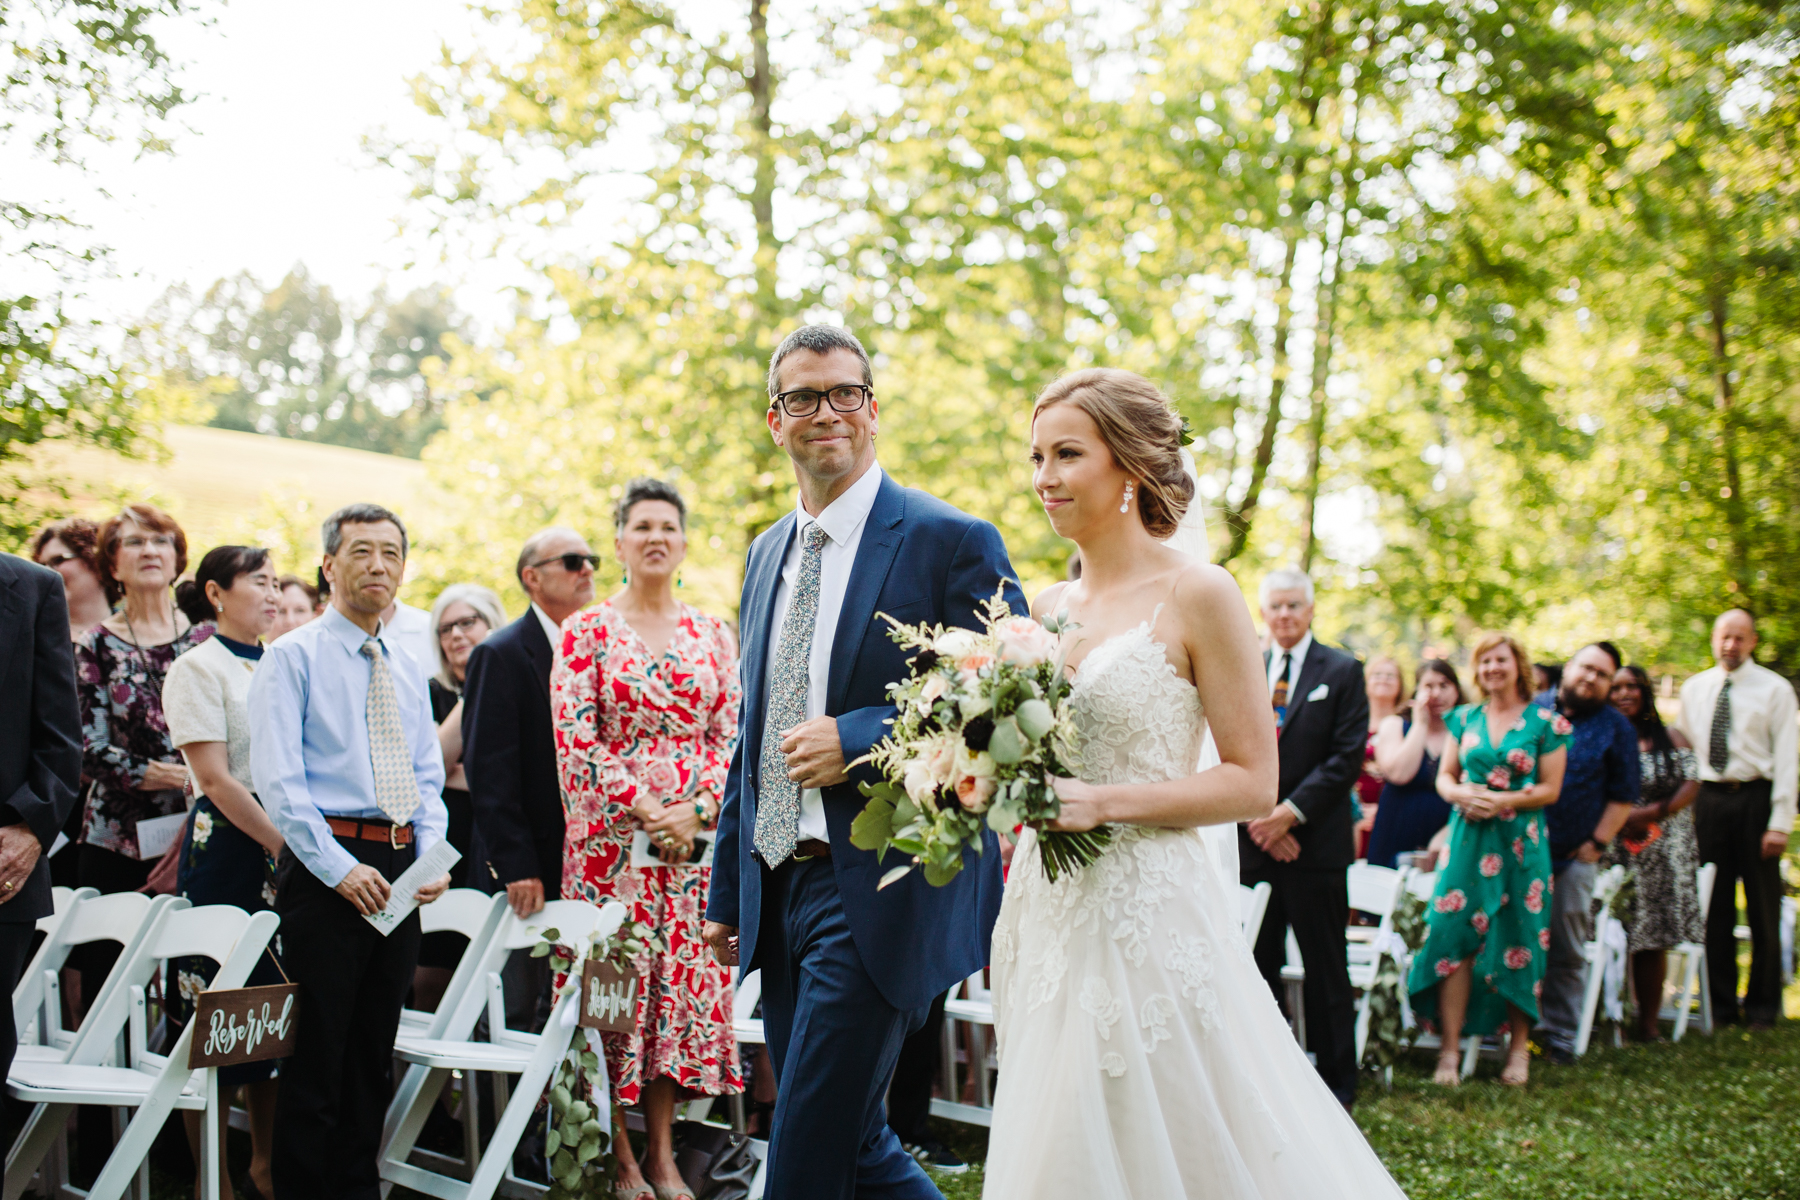 Father of the bride walking his daughter down the aisle at her stables at strawberry creek wedding in knoxville, tennessee